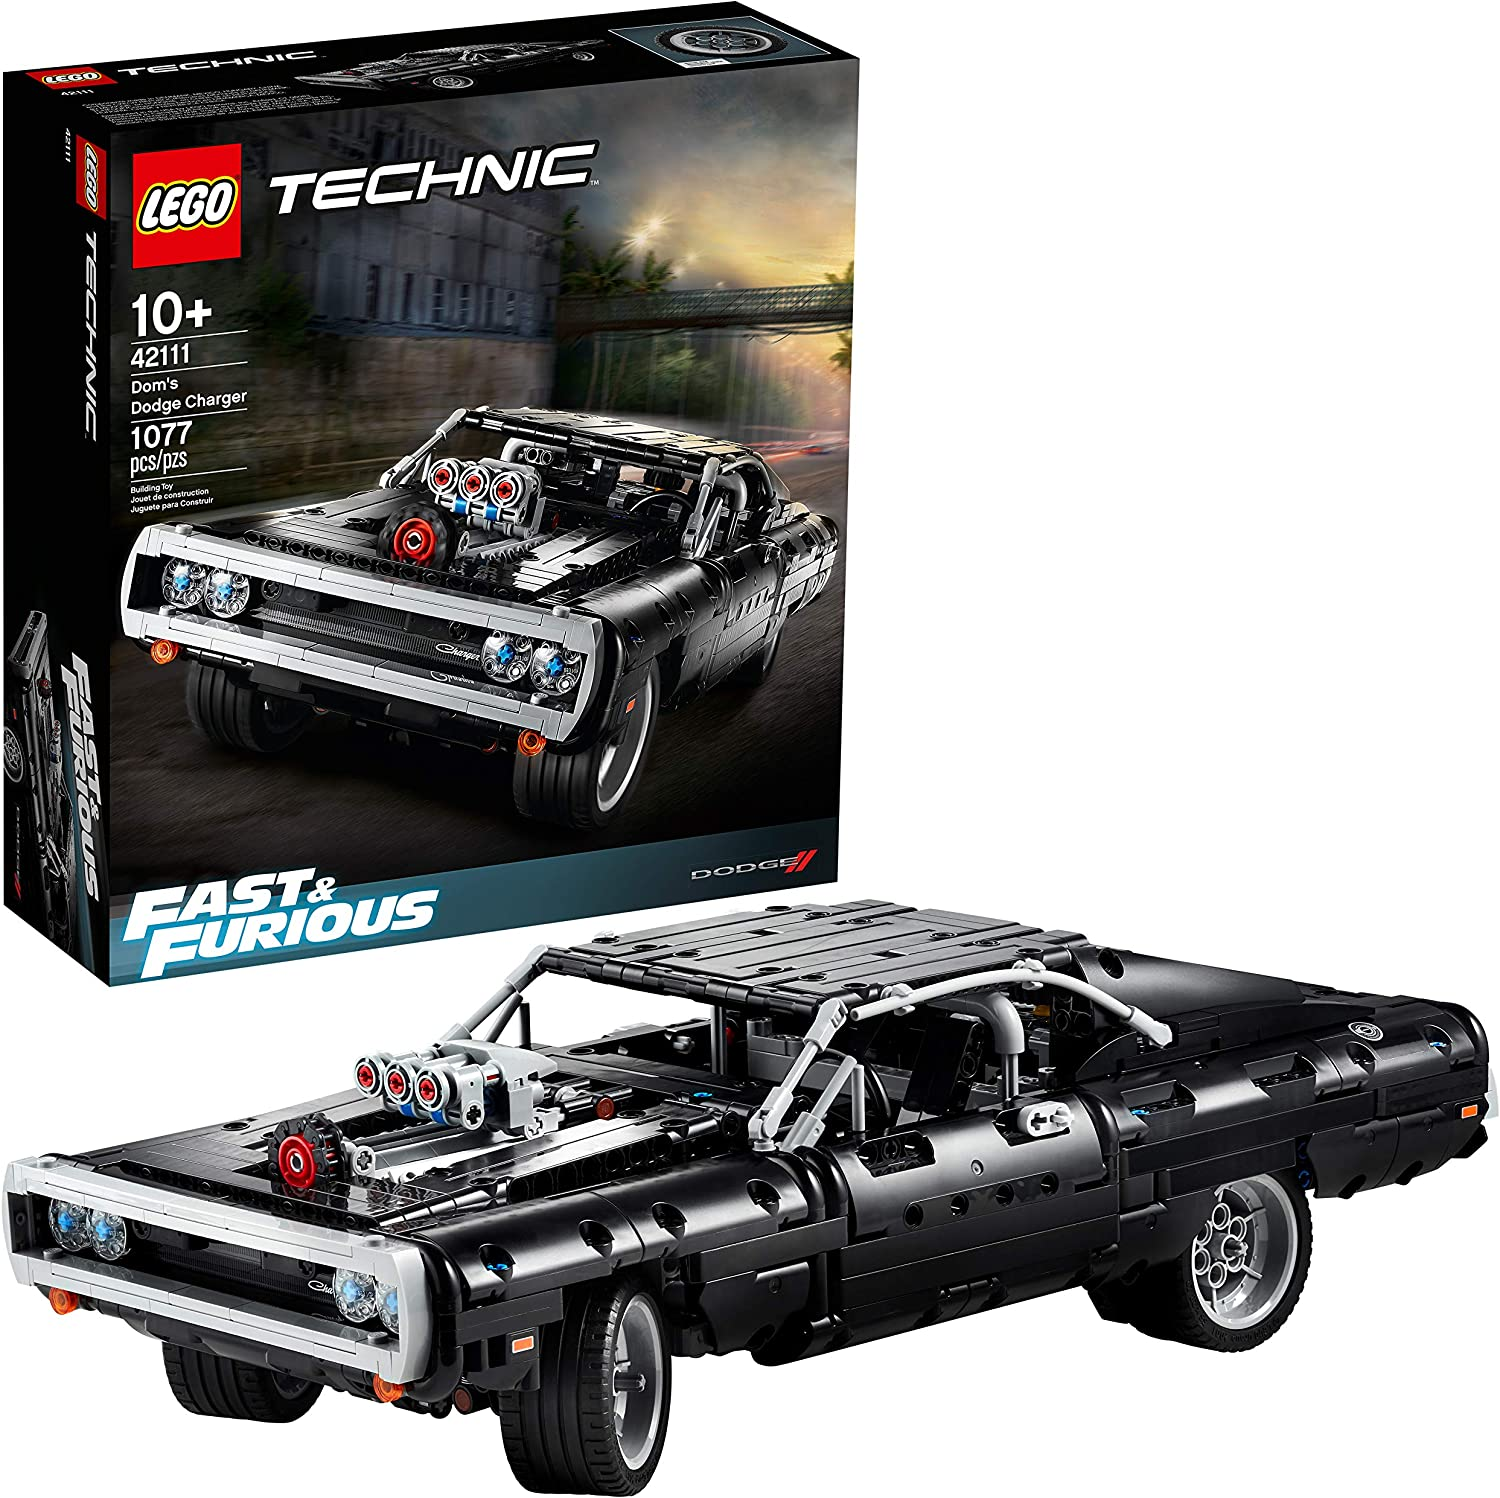 Amazon Opens Pre-Orders For Lego Fast & Furious Dom's Dodge Charger Building Set